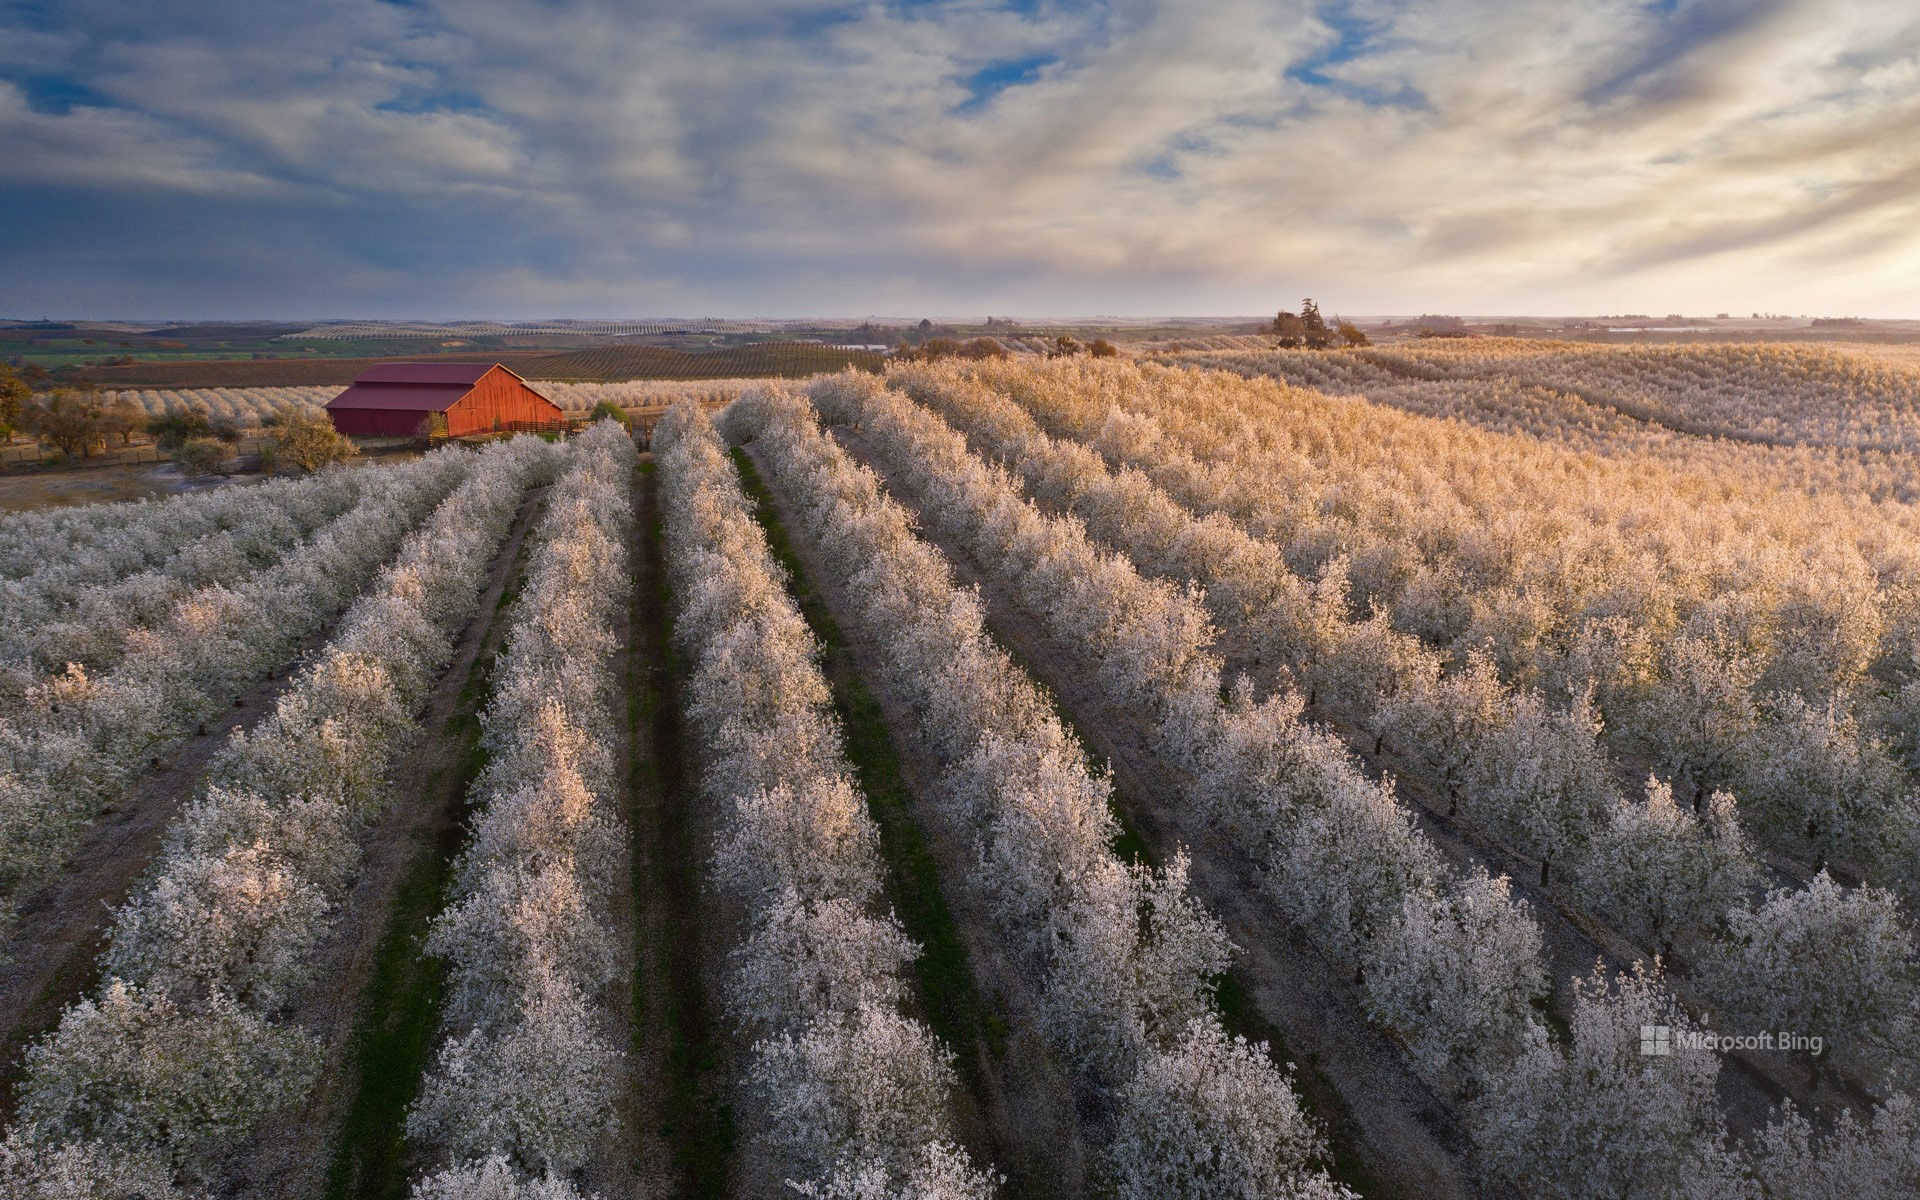 Flowering almond trees in California's Central Valley